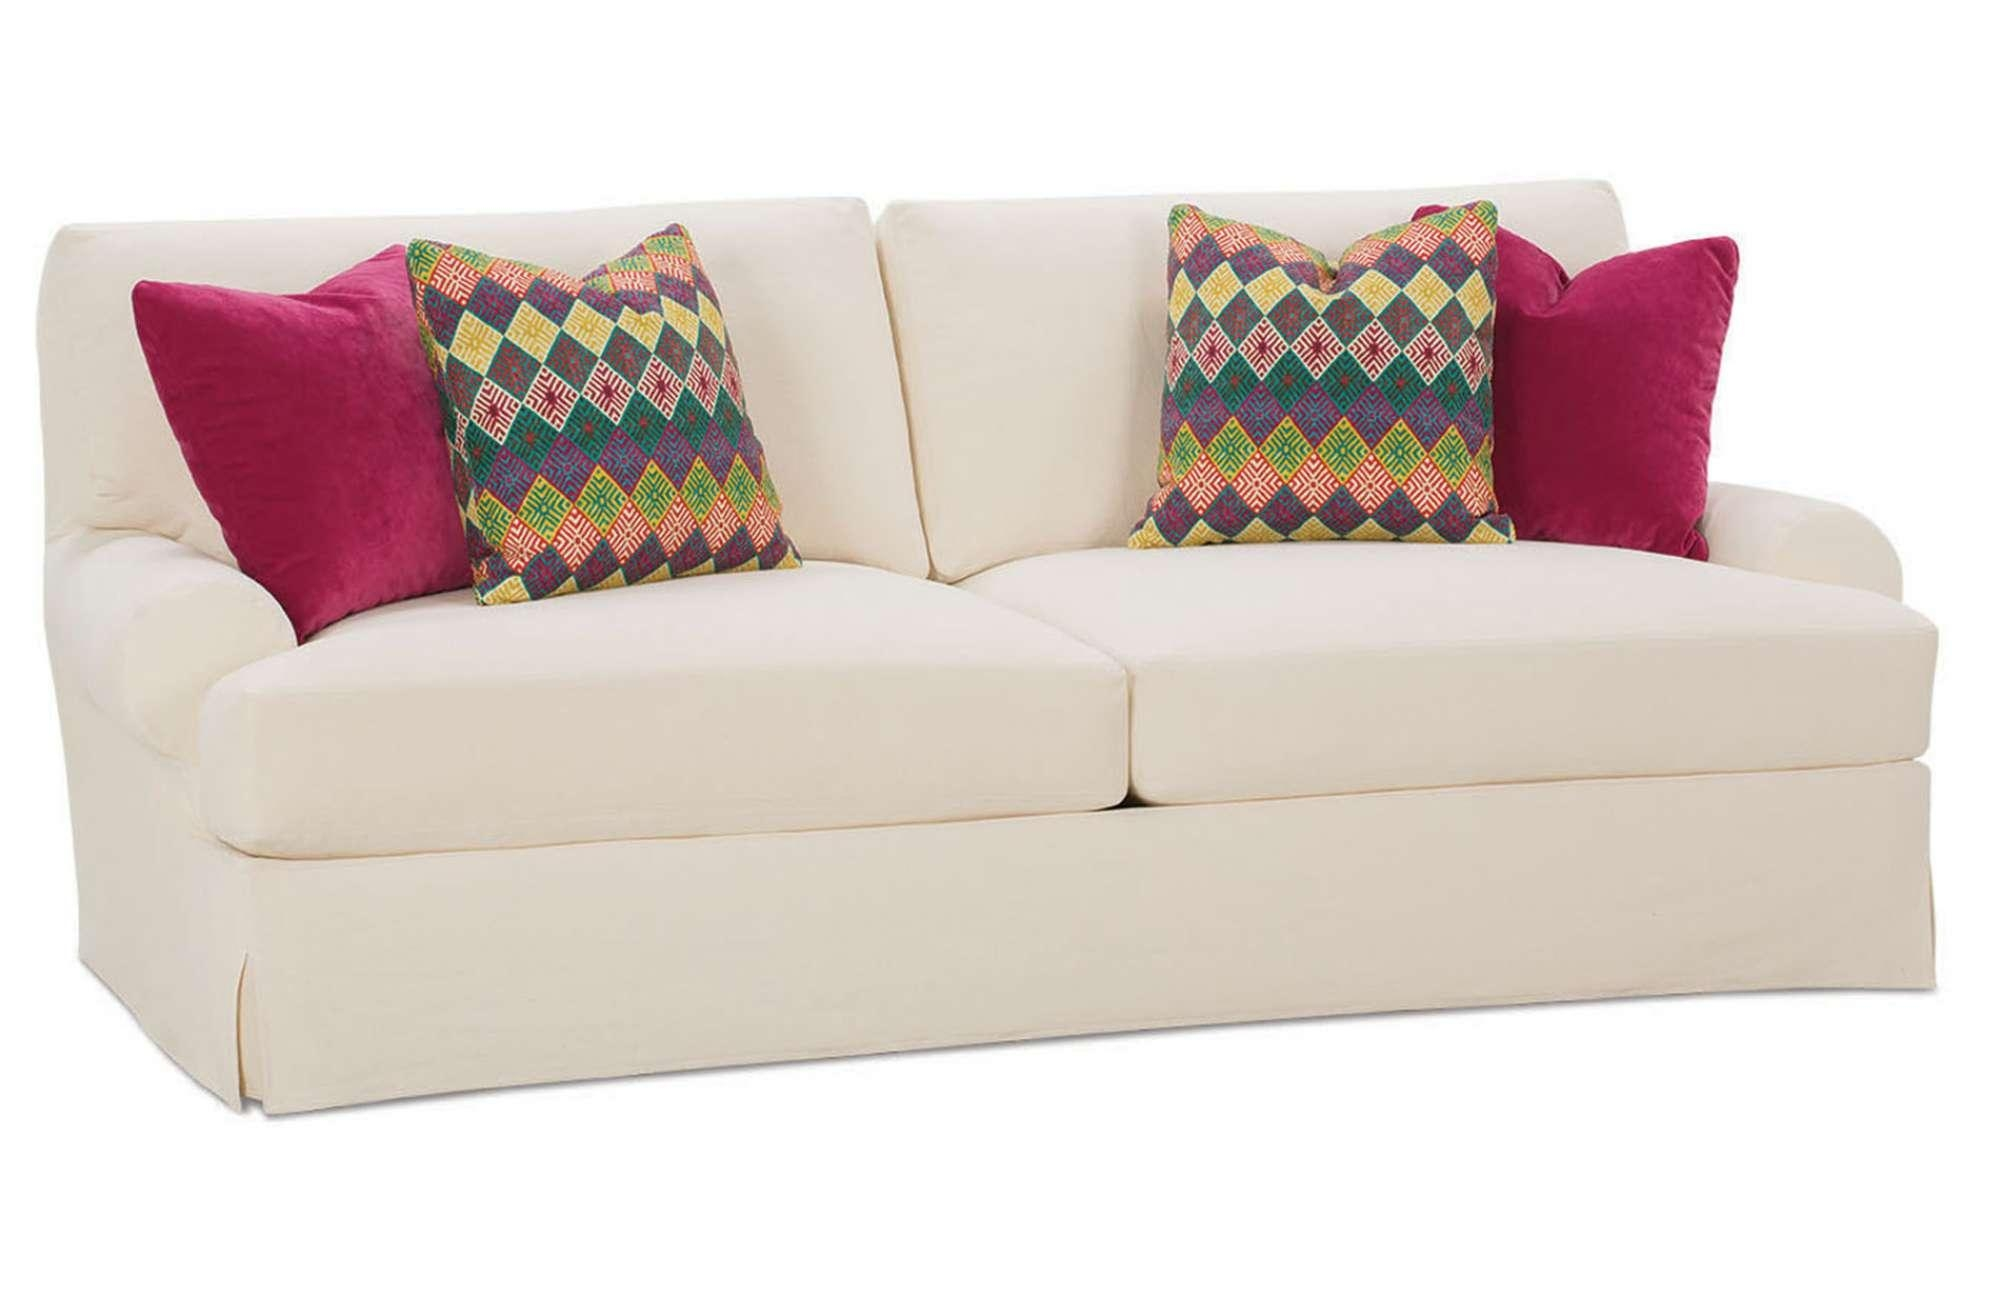 Furniture: Update Your Living Room With Best Sofa Slipcover Design Regarding Canvas Slipcover Sofas (Image 10 of 20)